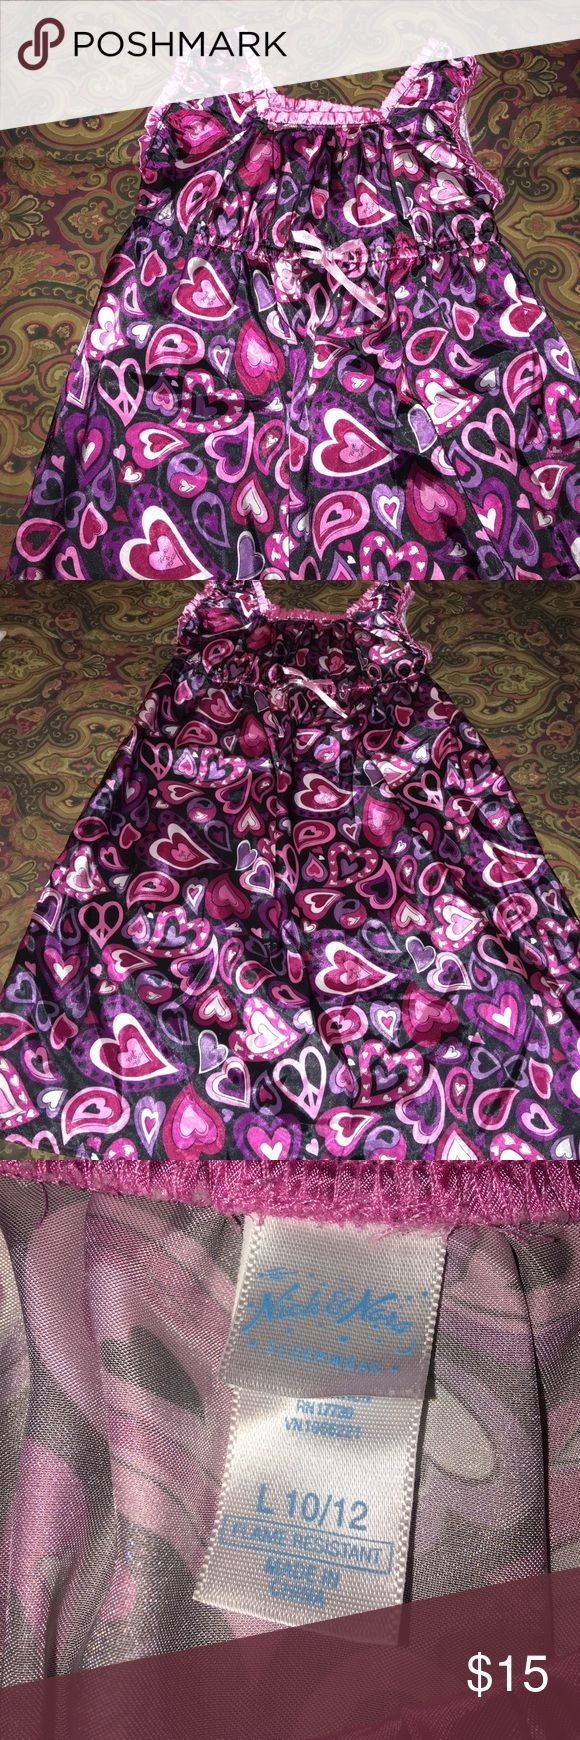 Girls Silky Flame Retardant Gown By Nick & Nora This gown is EUC. My grand wore it once. Soooo adorable and cool💕💕💕 Nick & Nora Pajamas Nightgowns